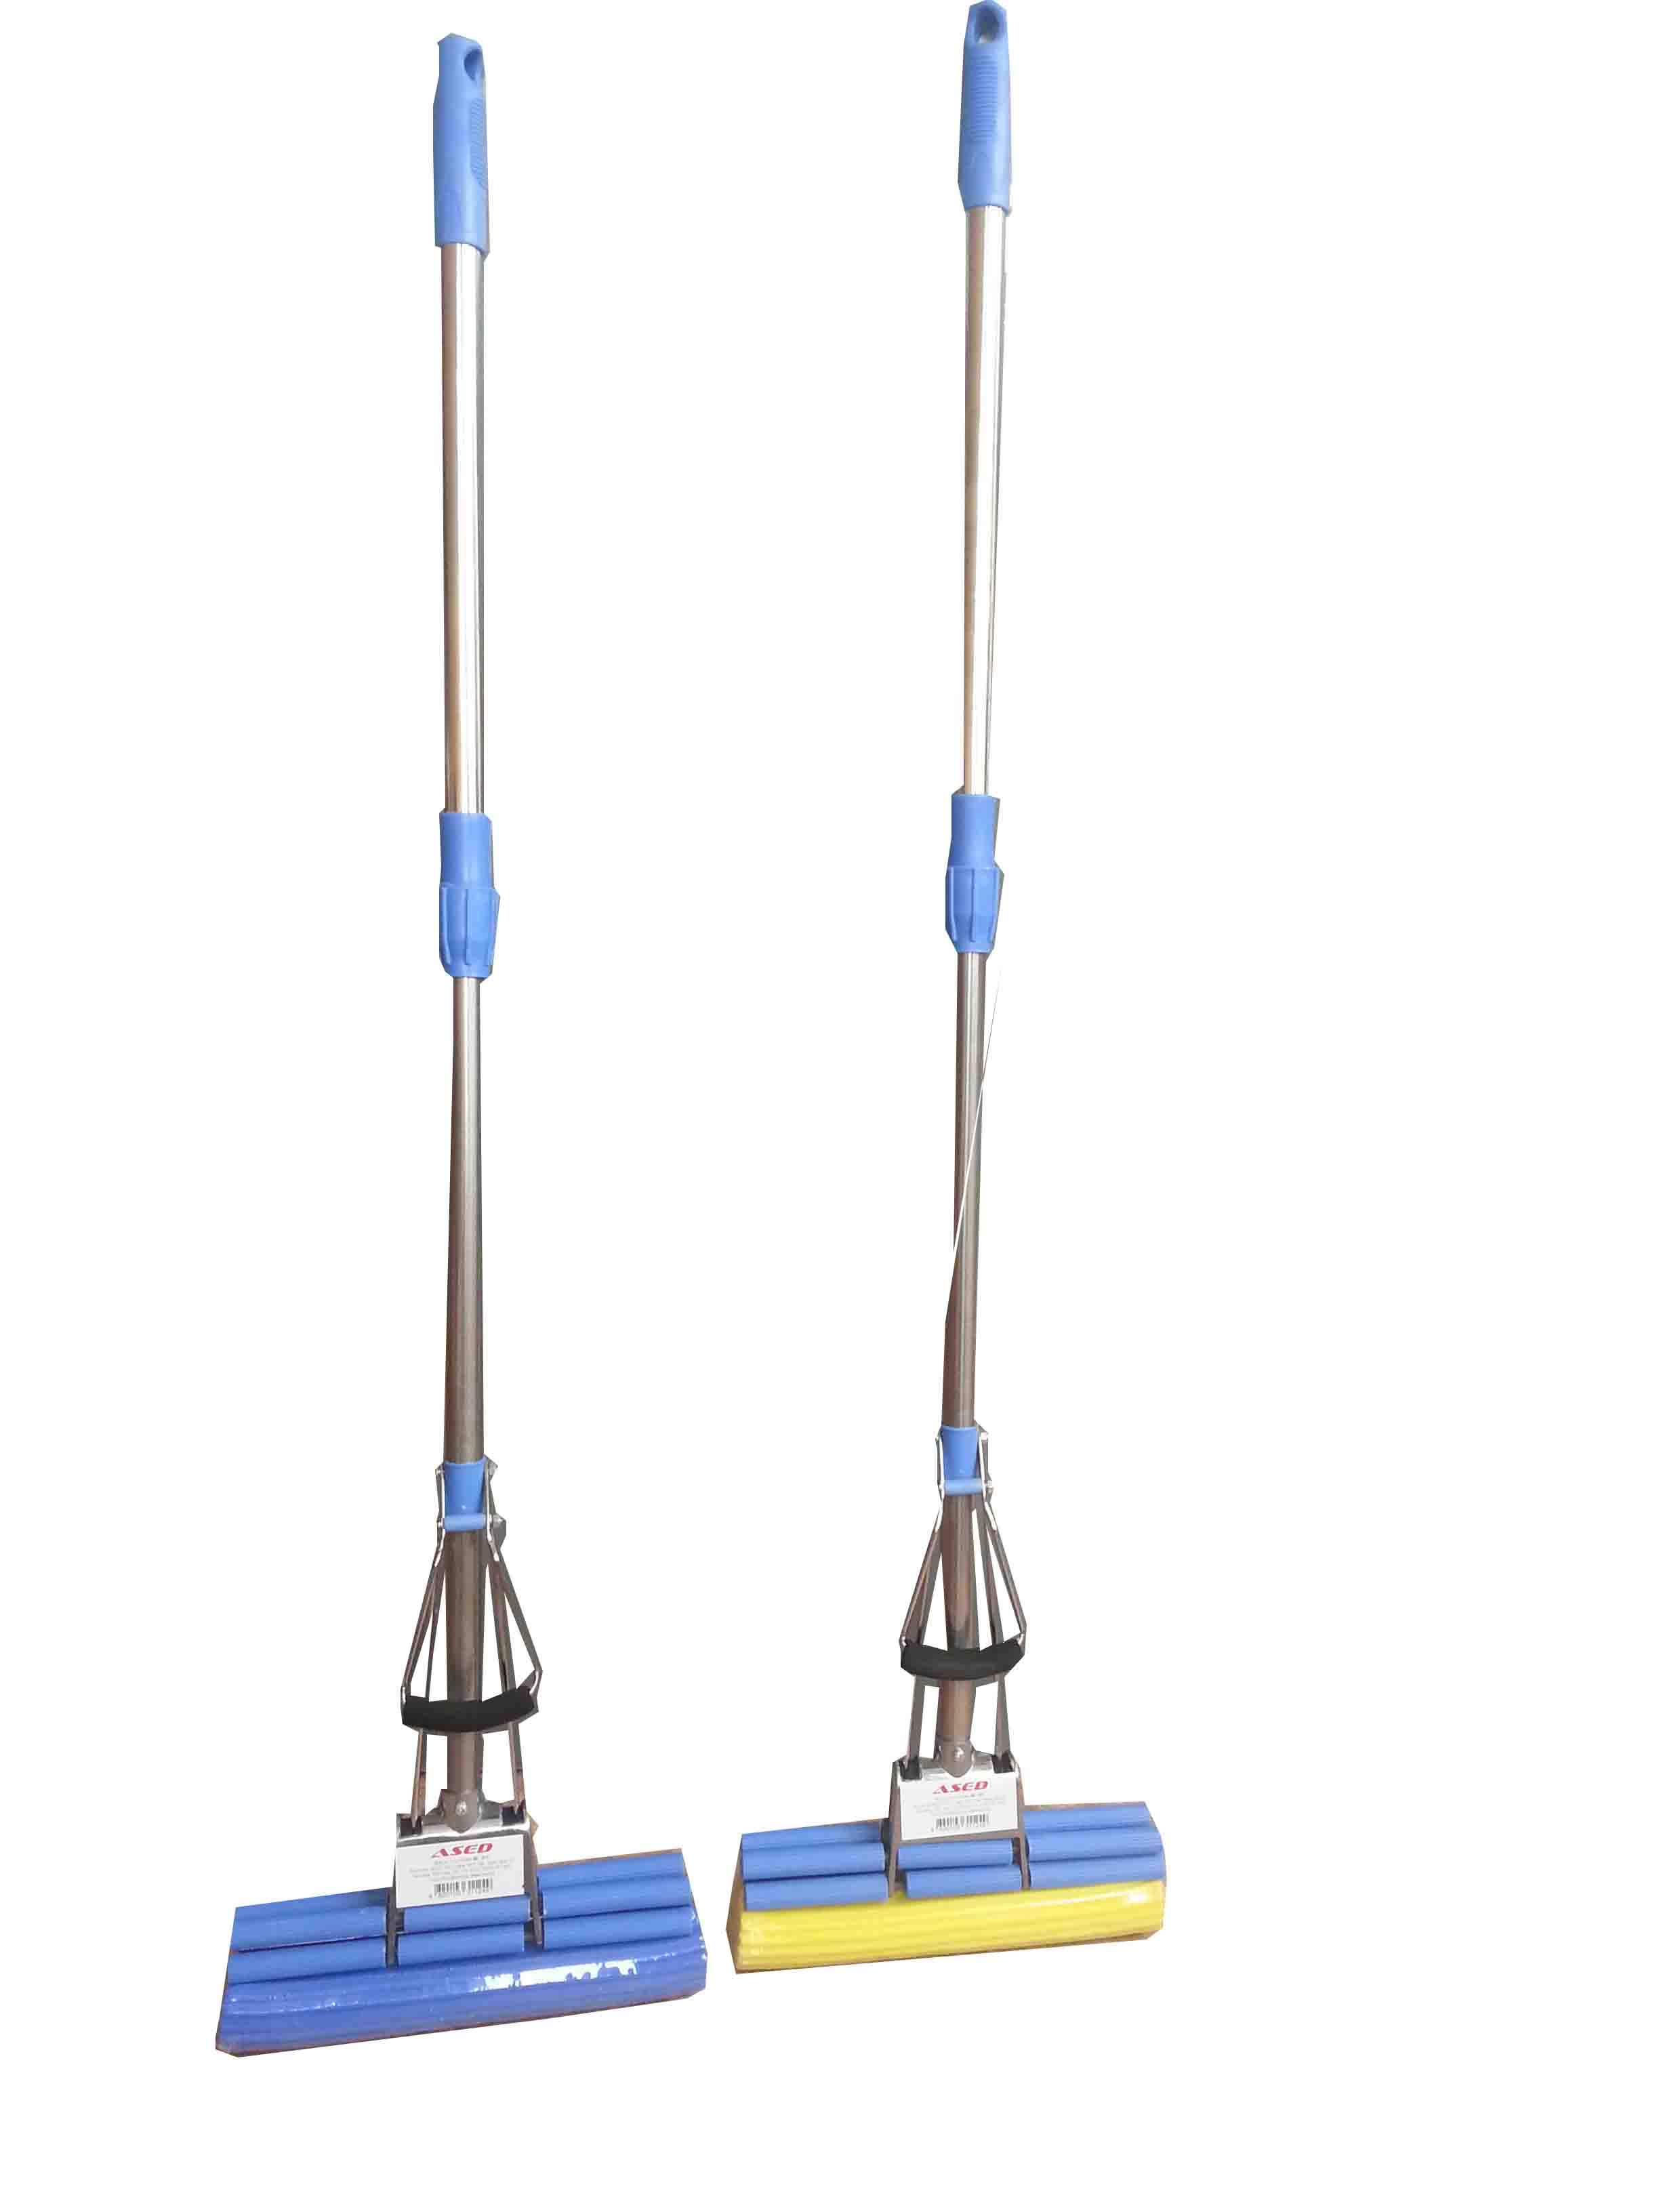 PVA Mop - double roller and stainless steel handle 120 cm.